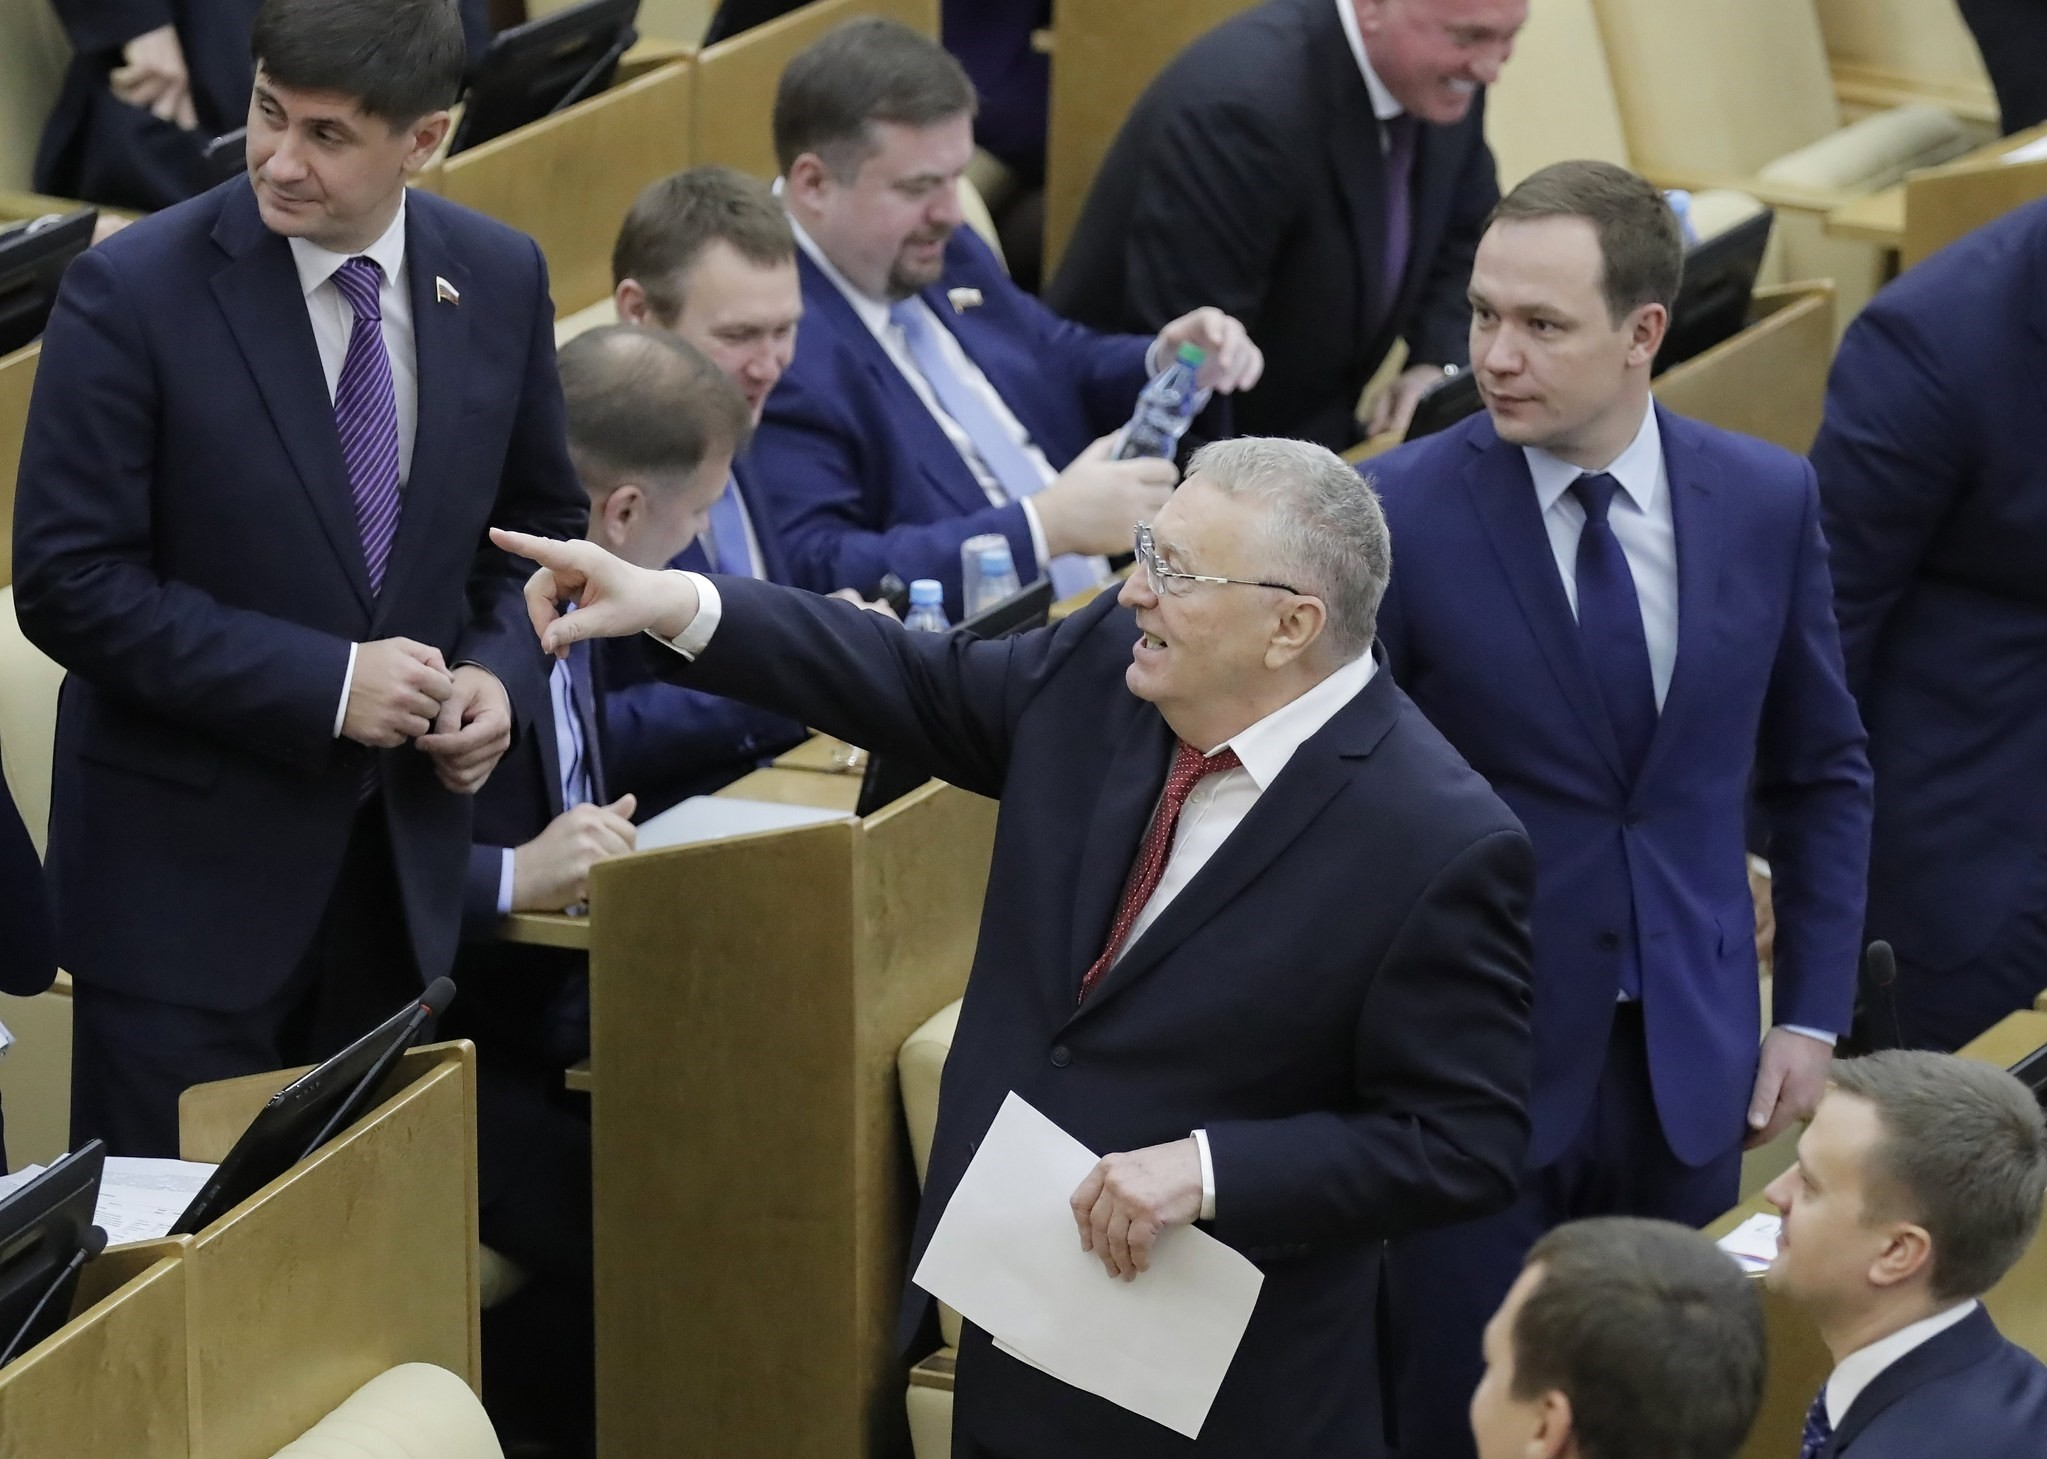 The Russian Liberal Democratic Party (LDPR) head and parliamentary LDPR fraction's leader Vladimir Zhirinovsky (front) gestures prior to a plenary session considering the draft of amendments to the Russia's Law on Media on Nov. 15, 2017 (EPA Photo)